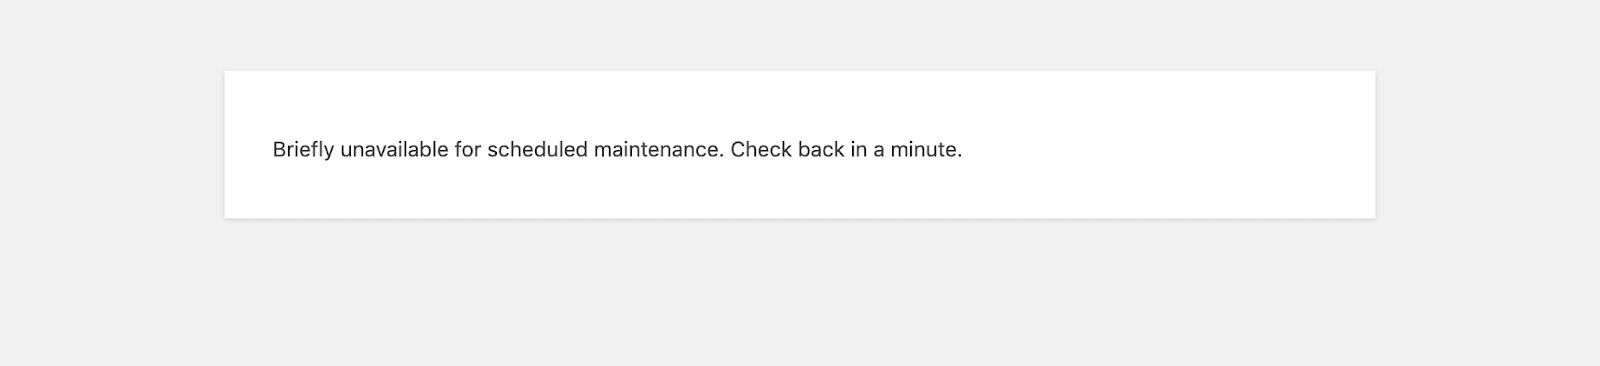 unavailable scheduled maintenance